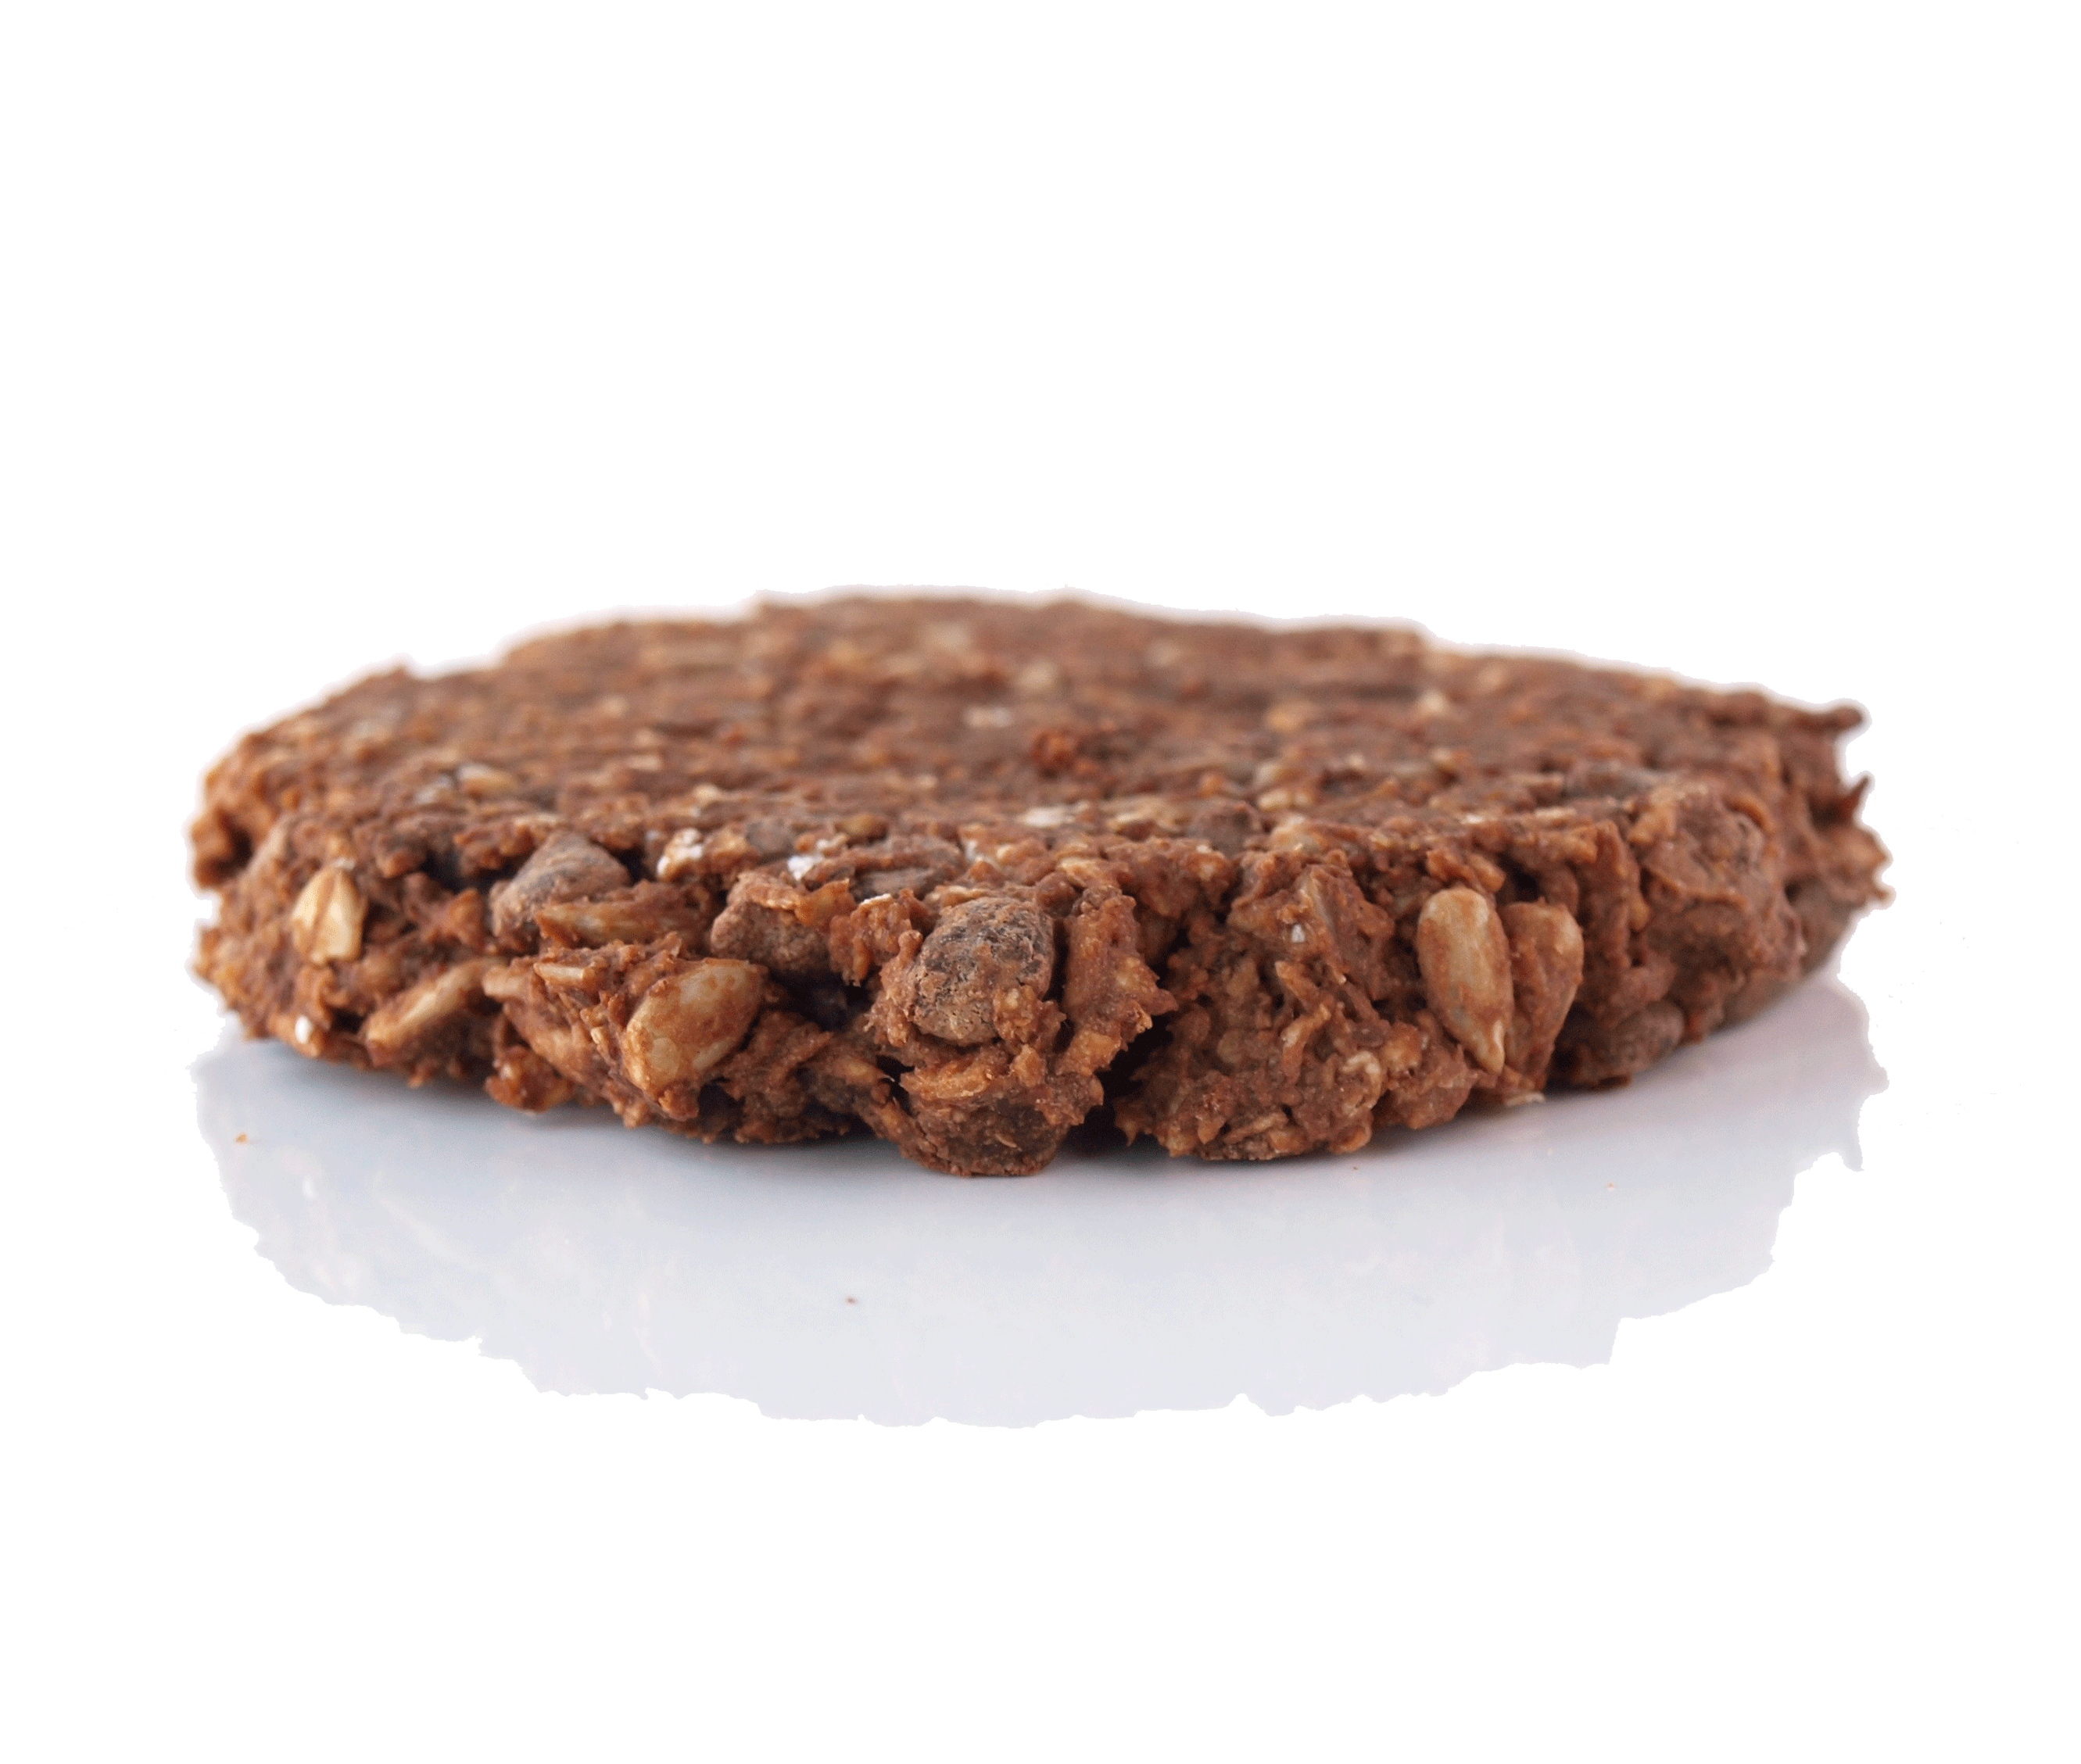 Choconut Cookie- made of healthy ingredients. Delicious healthy dessert.